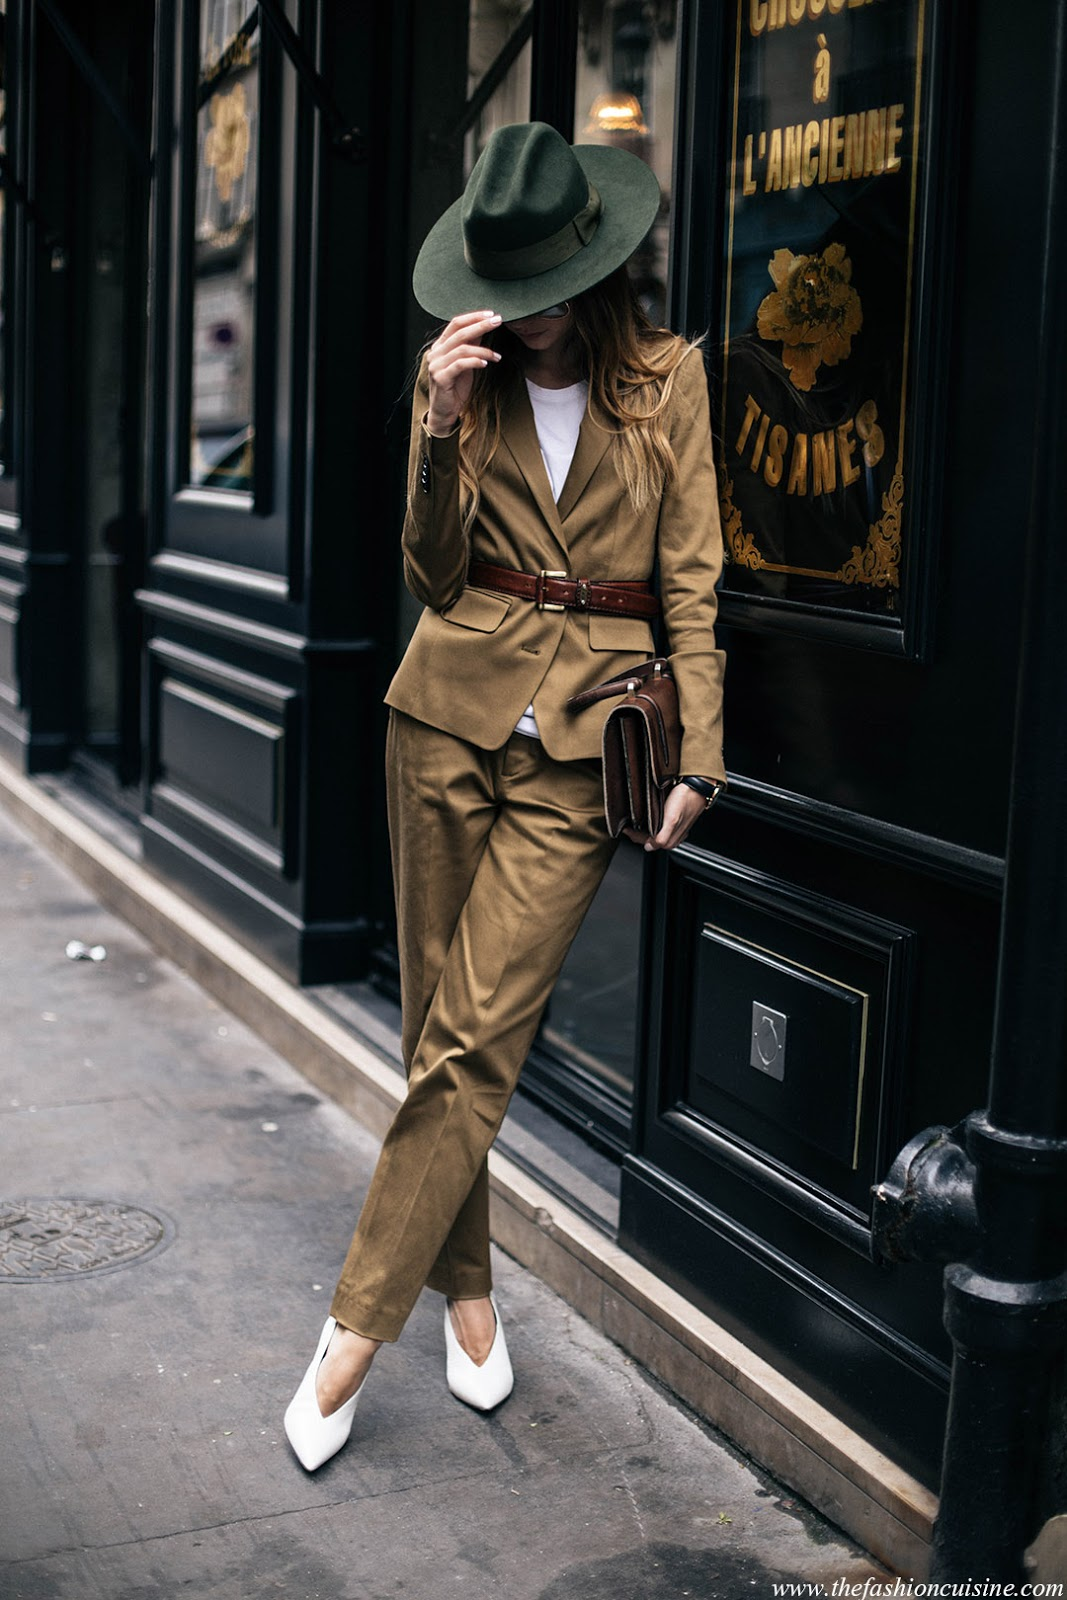 Masculine clothing for women